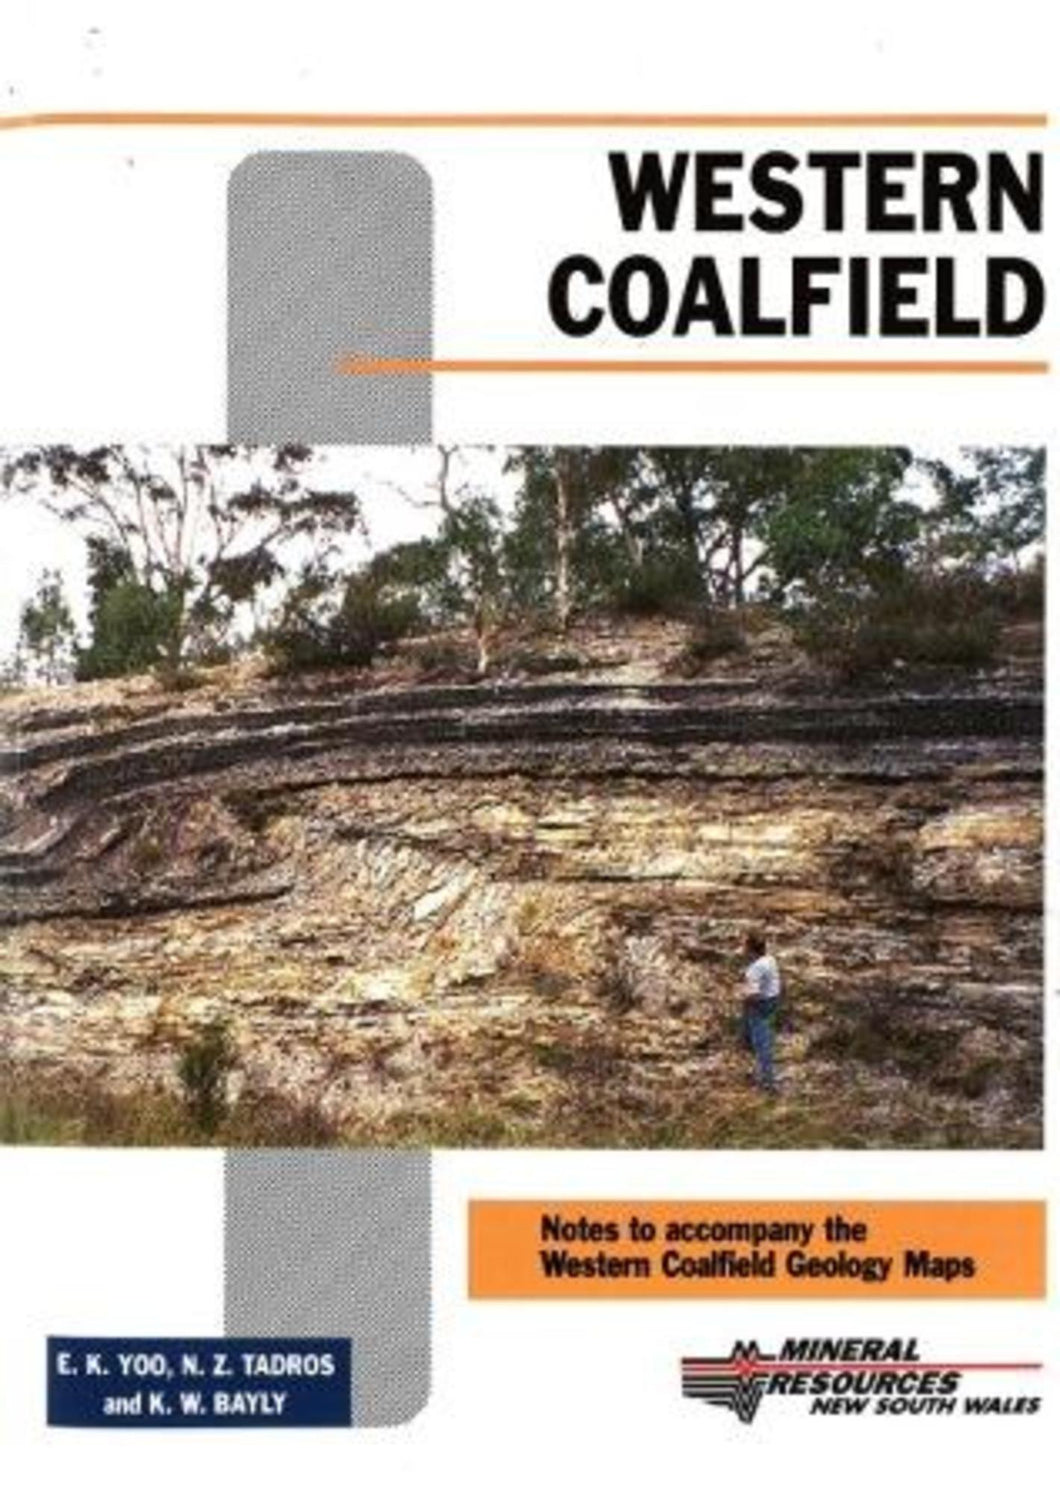 Image of Western Coalfield Geological Explanatory Notes 2001 book cover